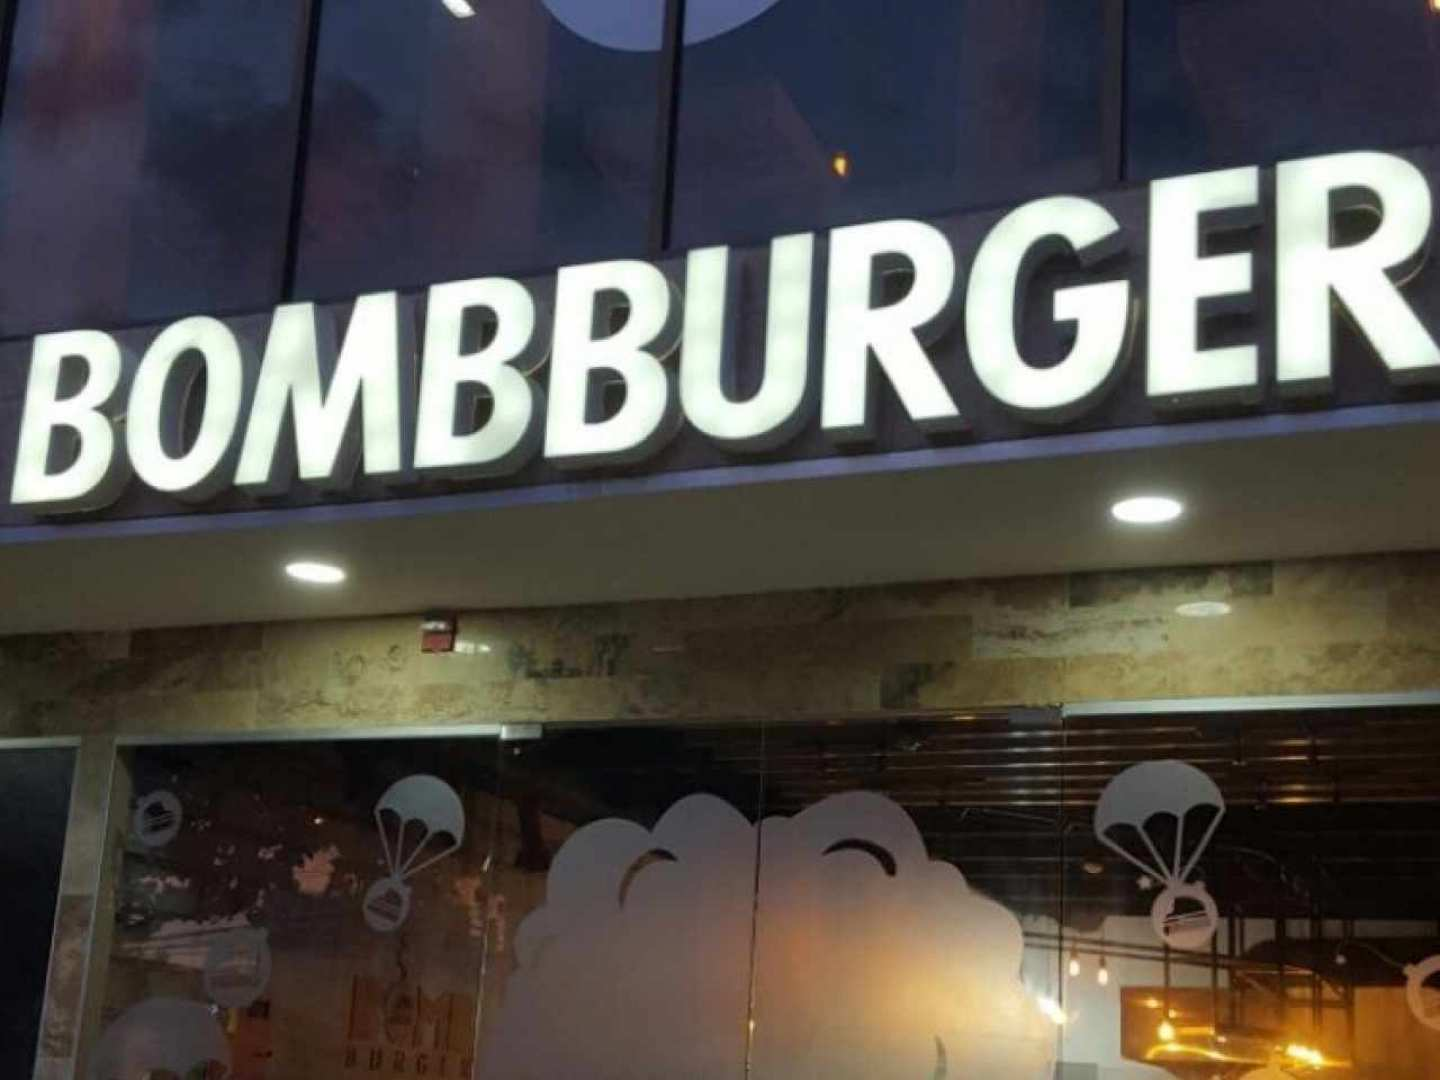 Bombburger